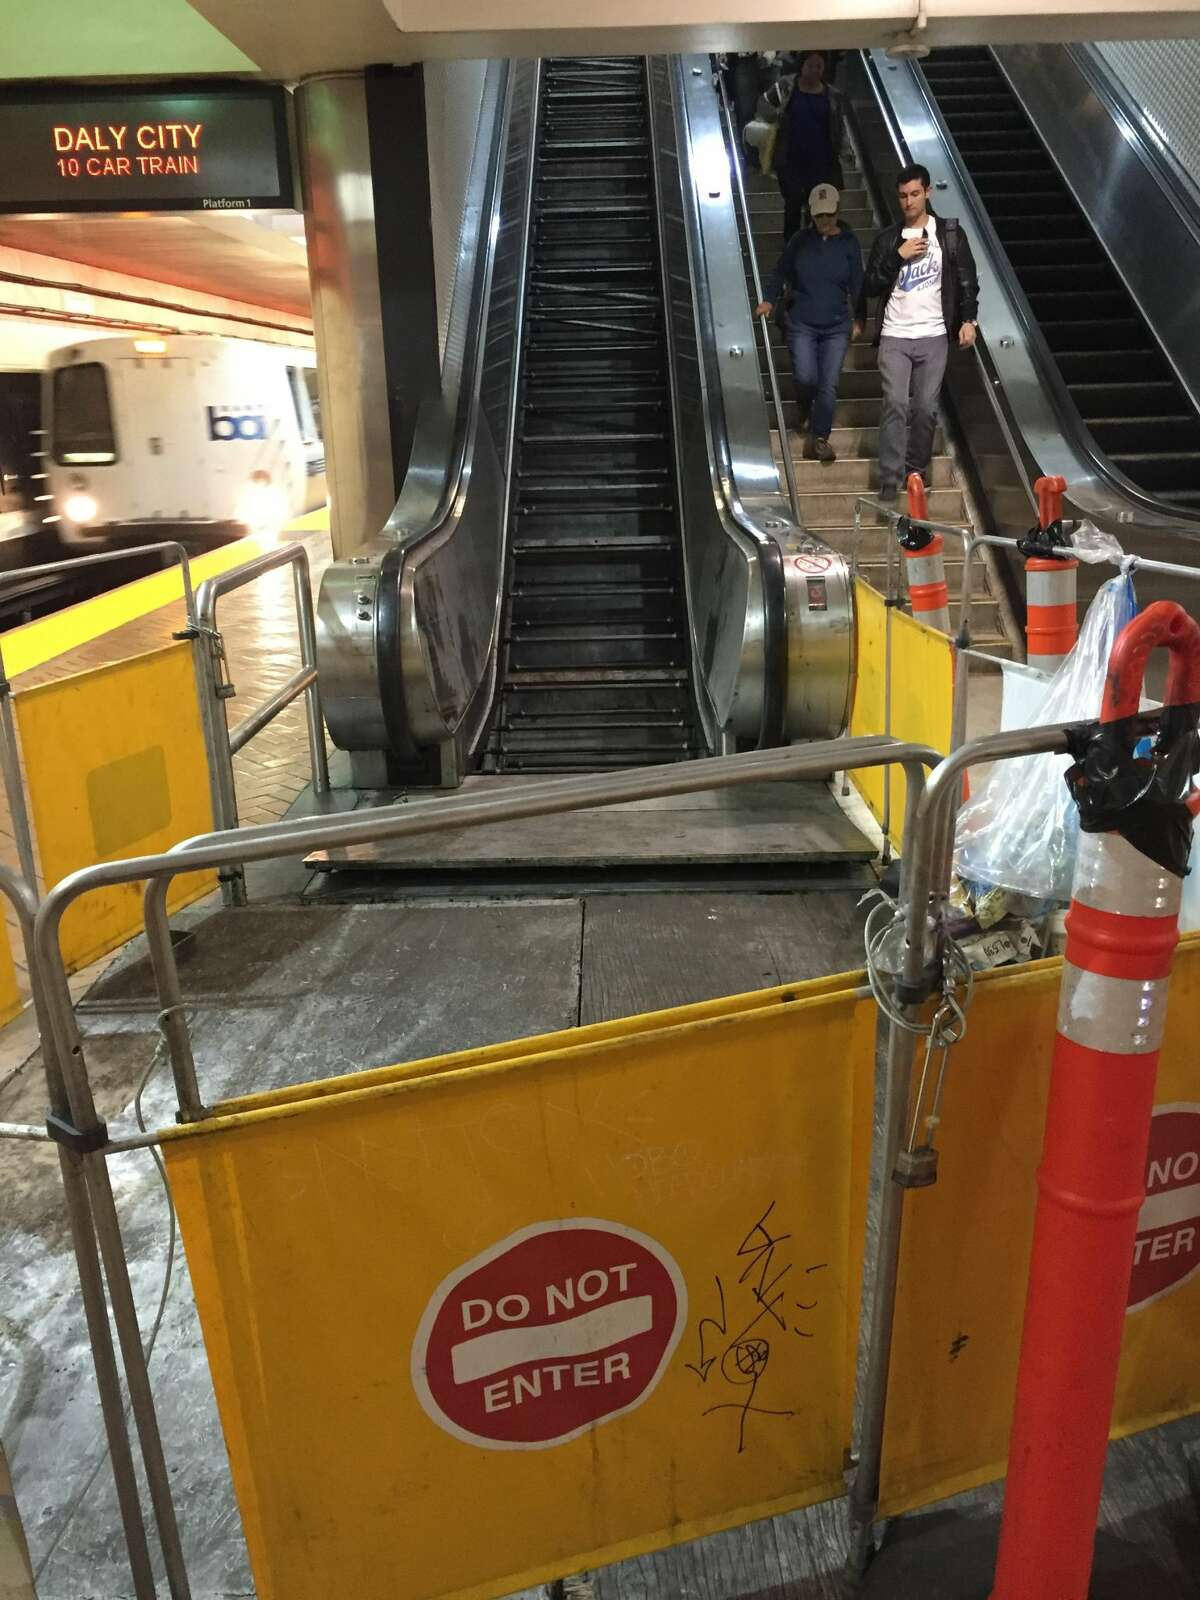 A view of the ripped-out escalator.